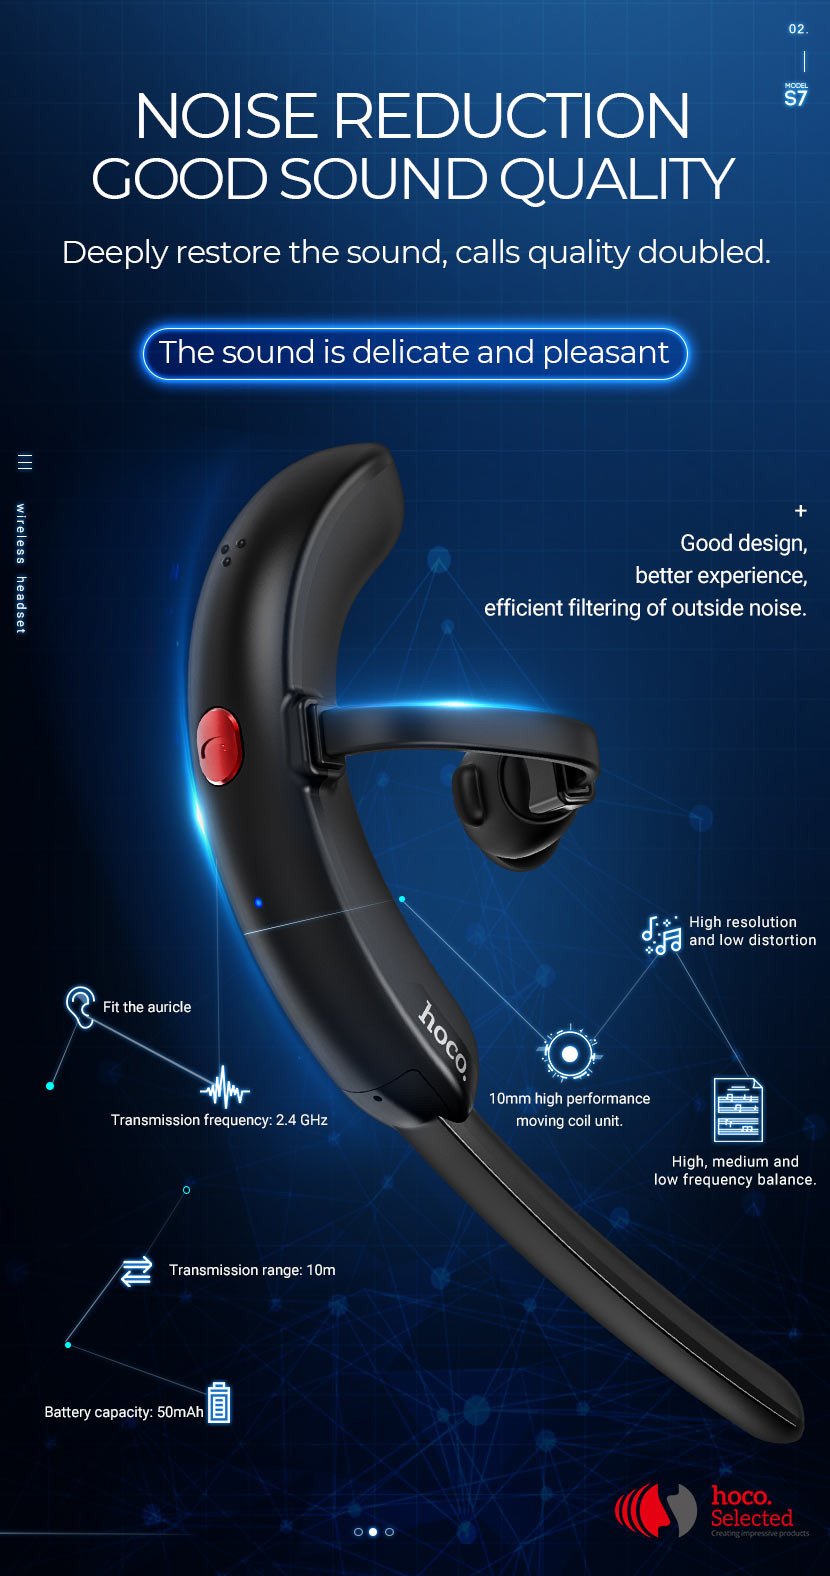 hoco selected s7 delight business wireless headset noise reduction en